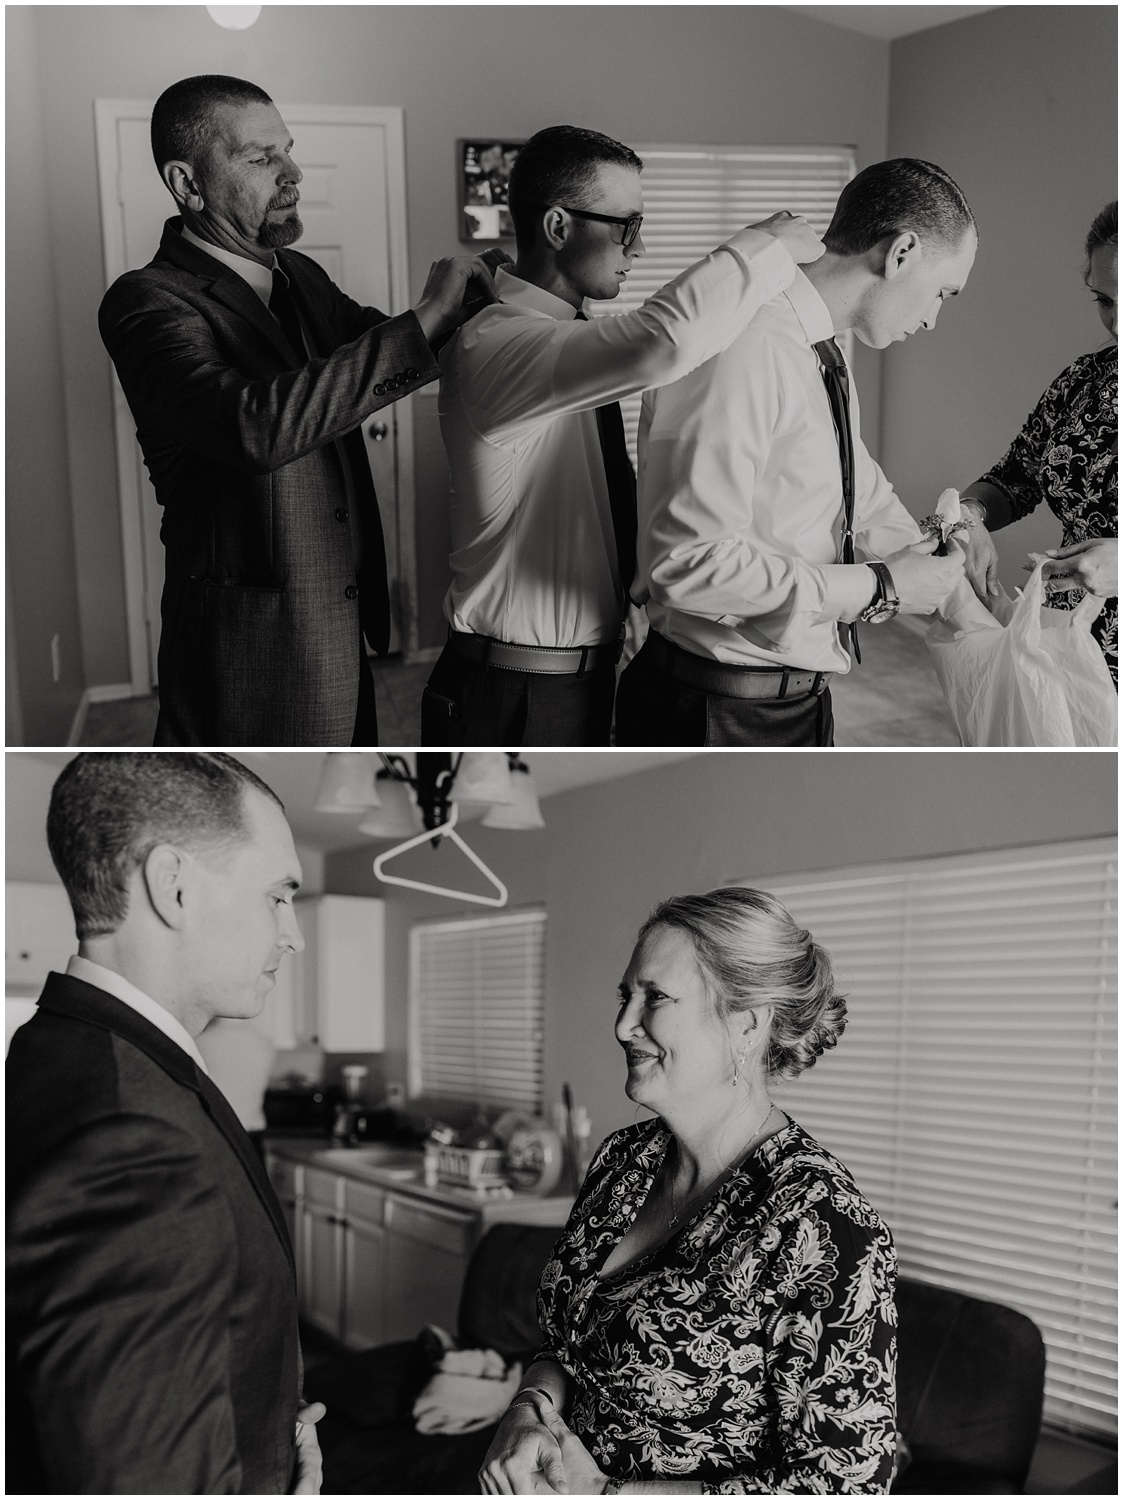 Candid moments of the Bride and groom getting ready on their wedding day.